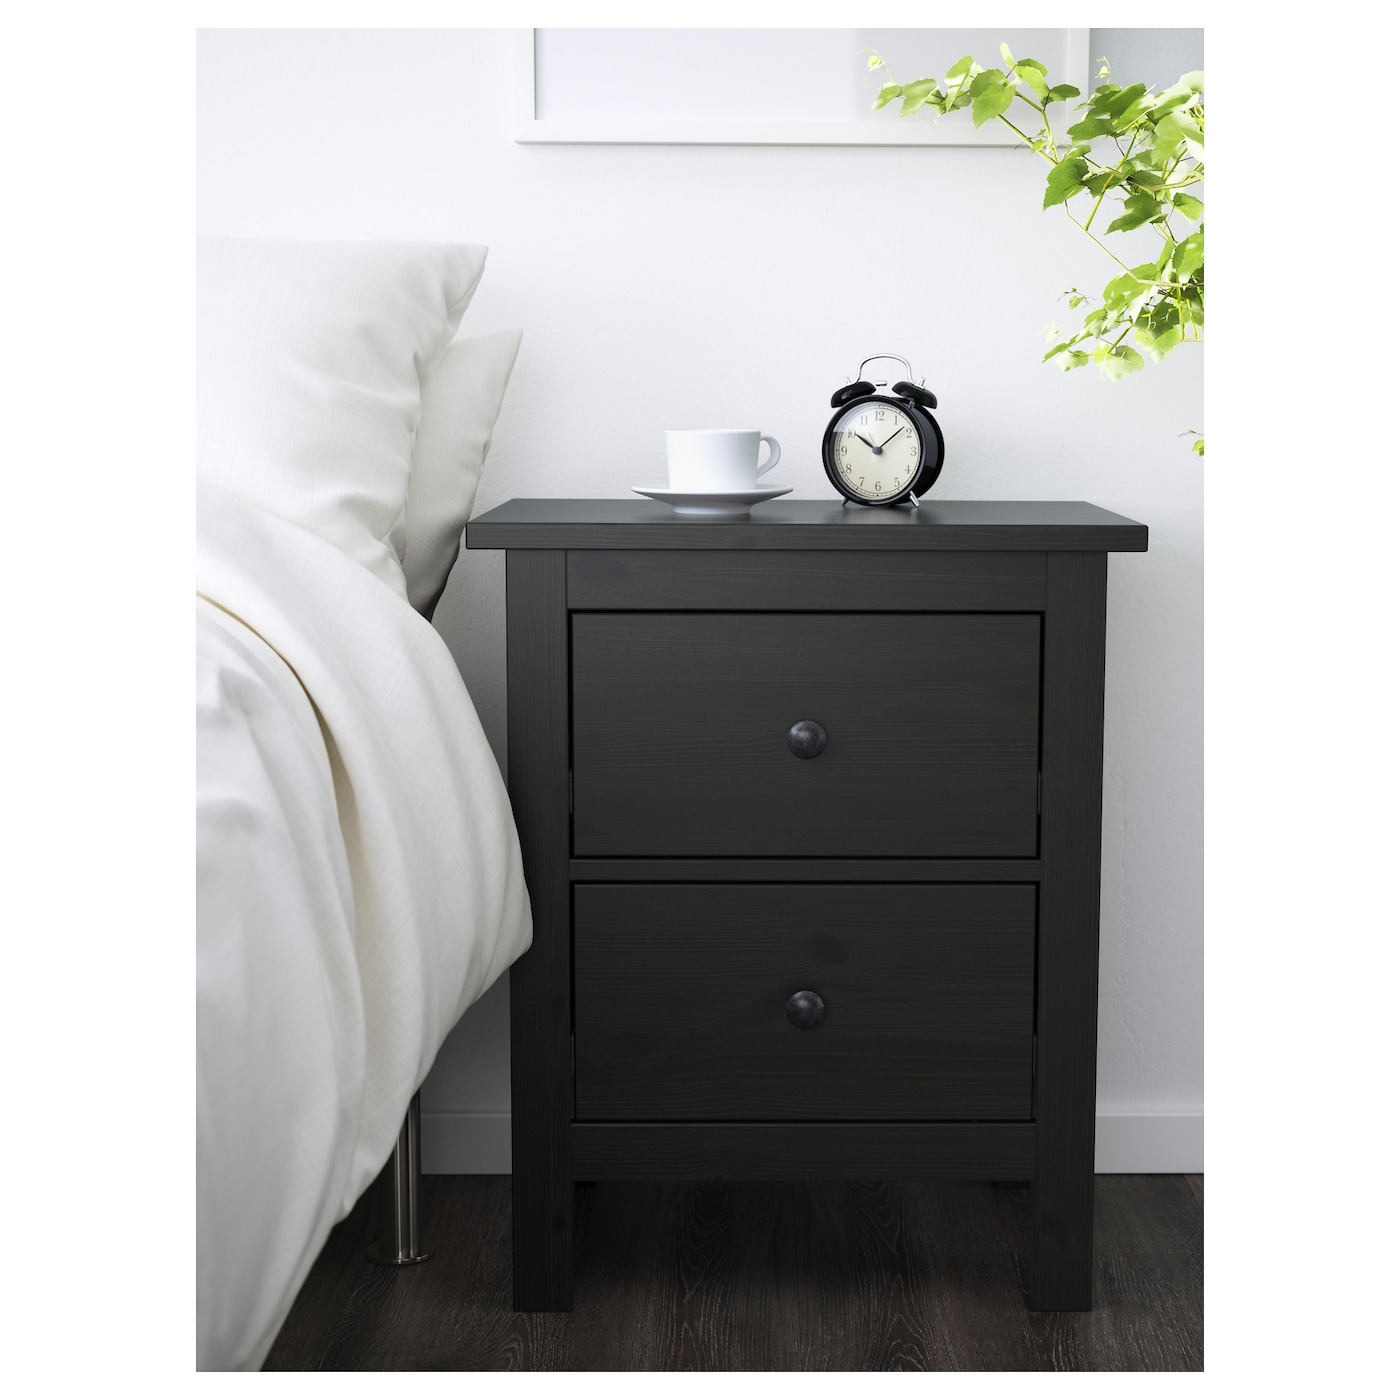 Hemnes 2 Drawer Chest Black Brown 21 1 4x26 Ikea